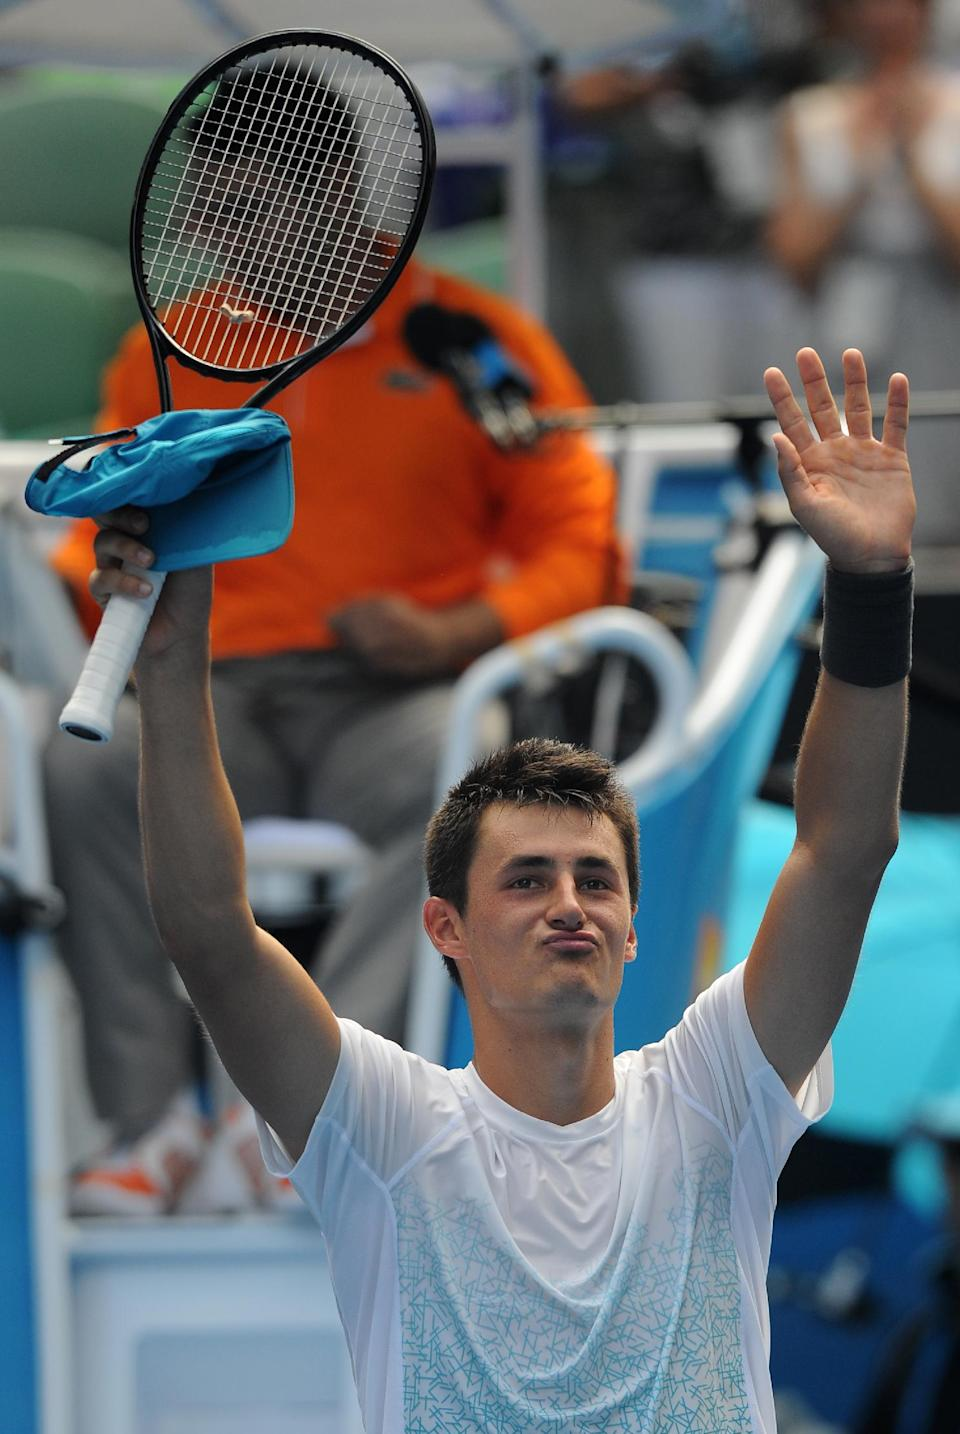 Australia's Bernard Tomic celebrates after defeating Germany's Daniel Brands in their second round match at the Australian Open tennis championship in Melbourne, Australia, Thursday, Jan. 17, 2013. (AP Photo/Andrew Brownbill)